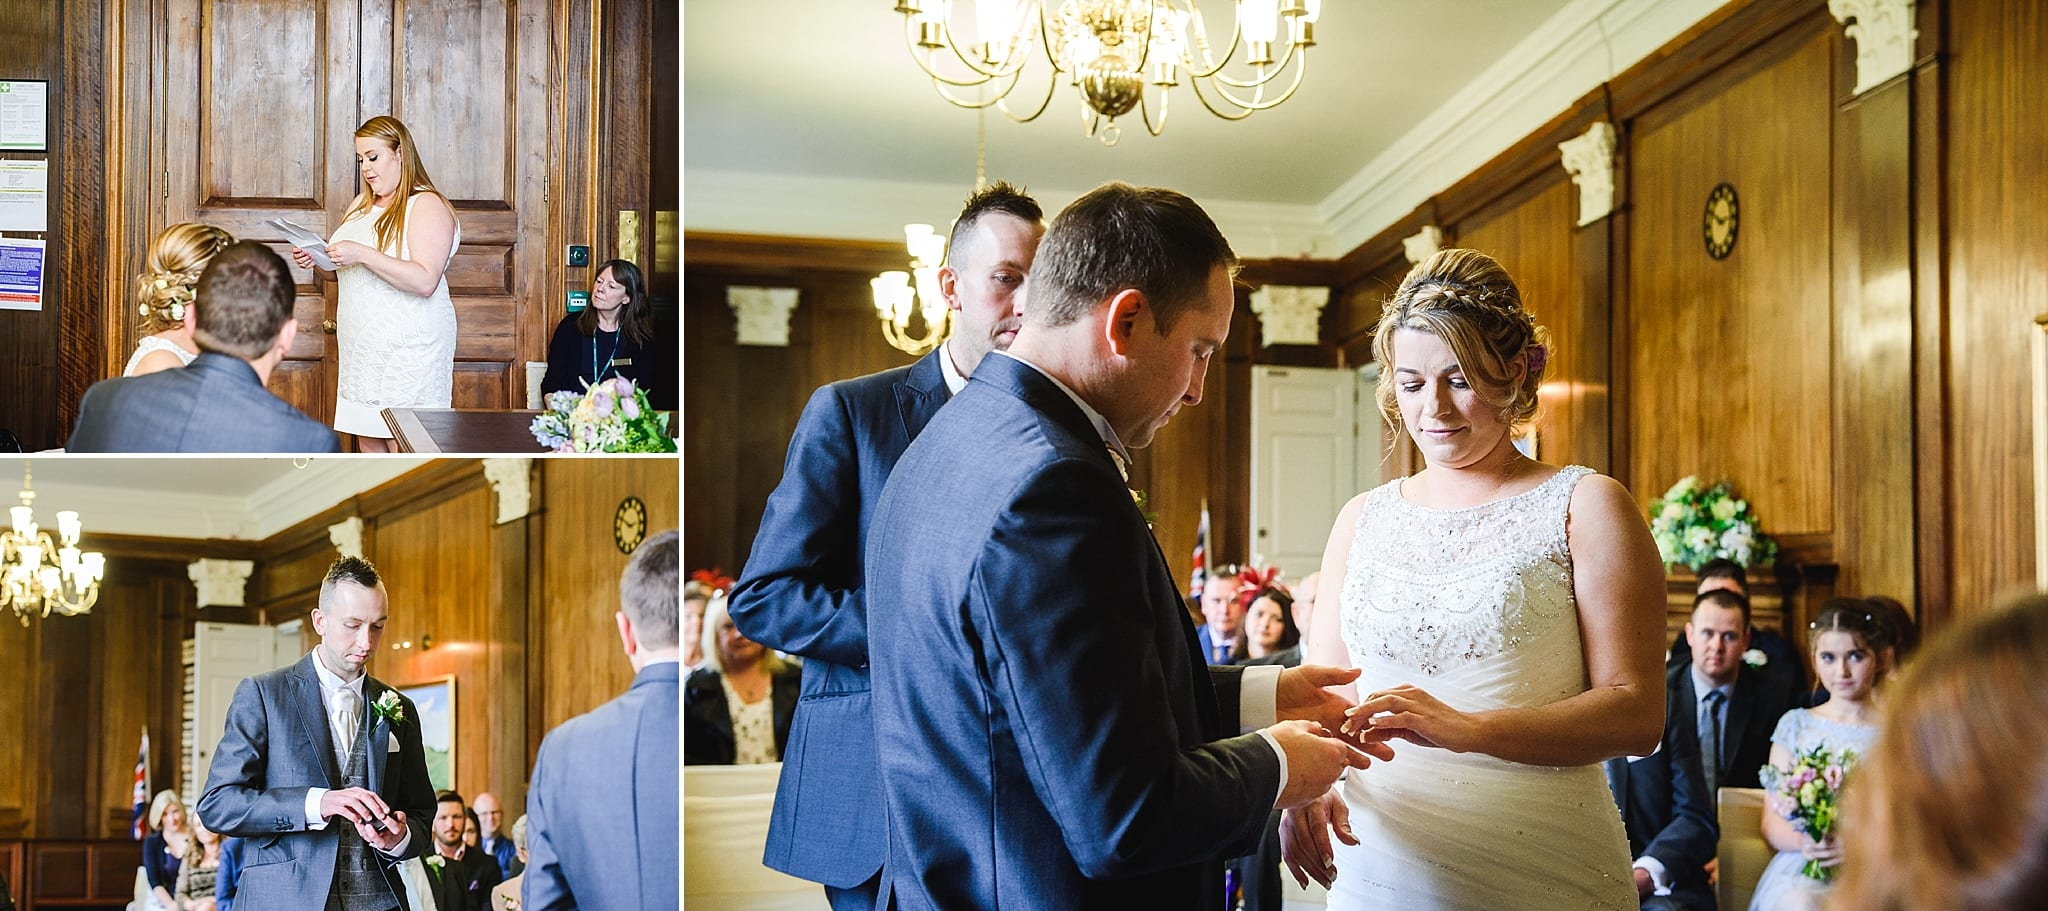 an exchange of rings at Trowbridge registry office ceremony